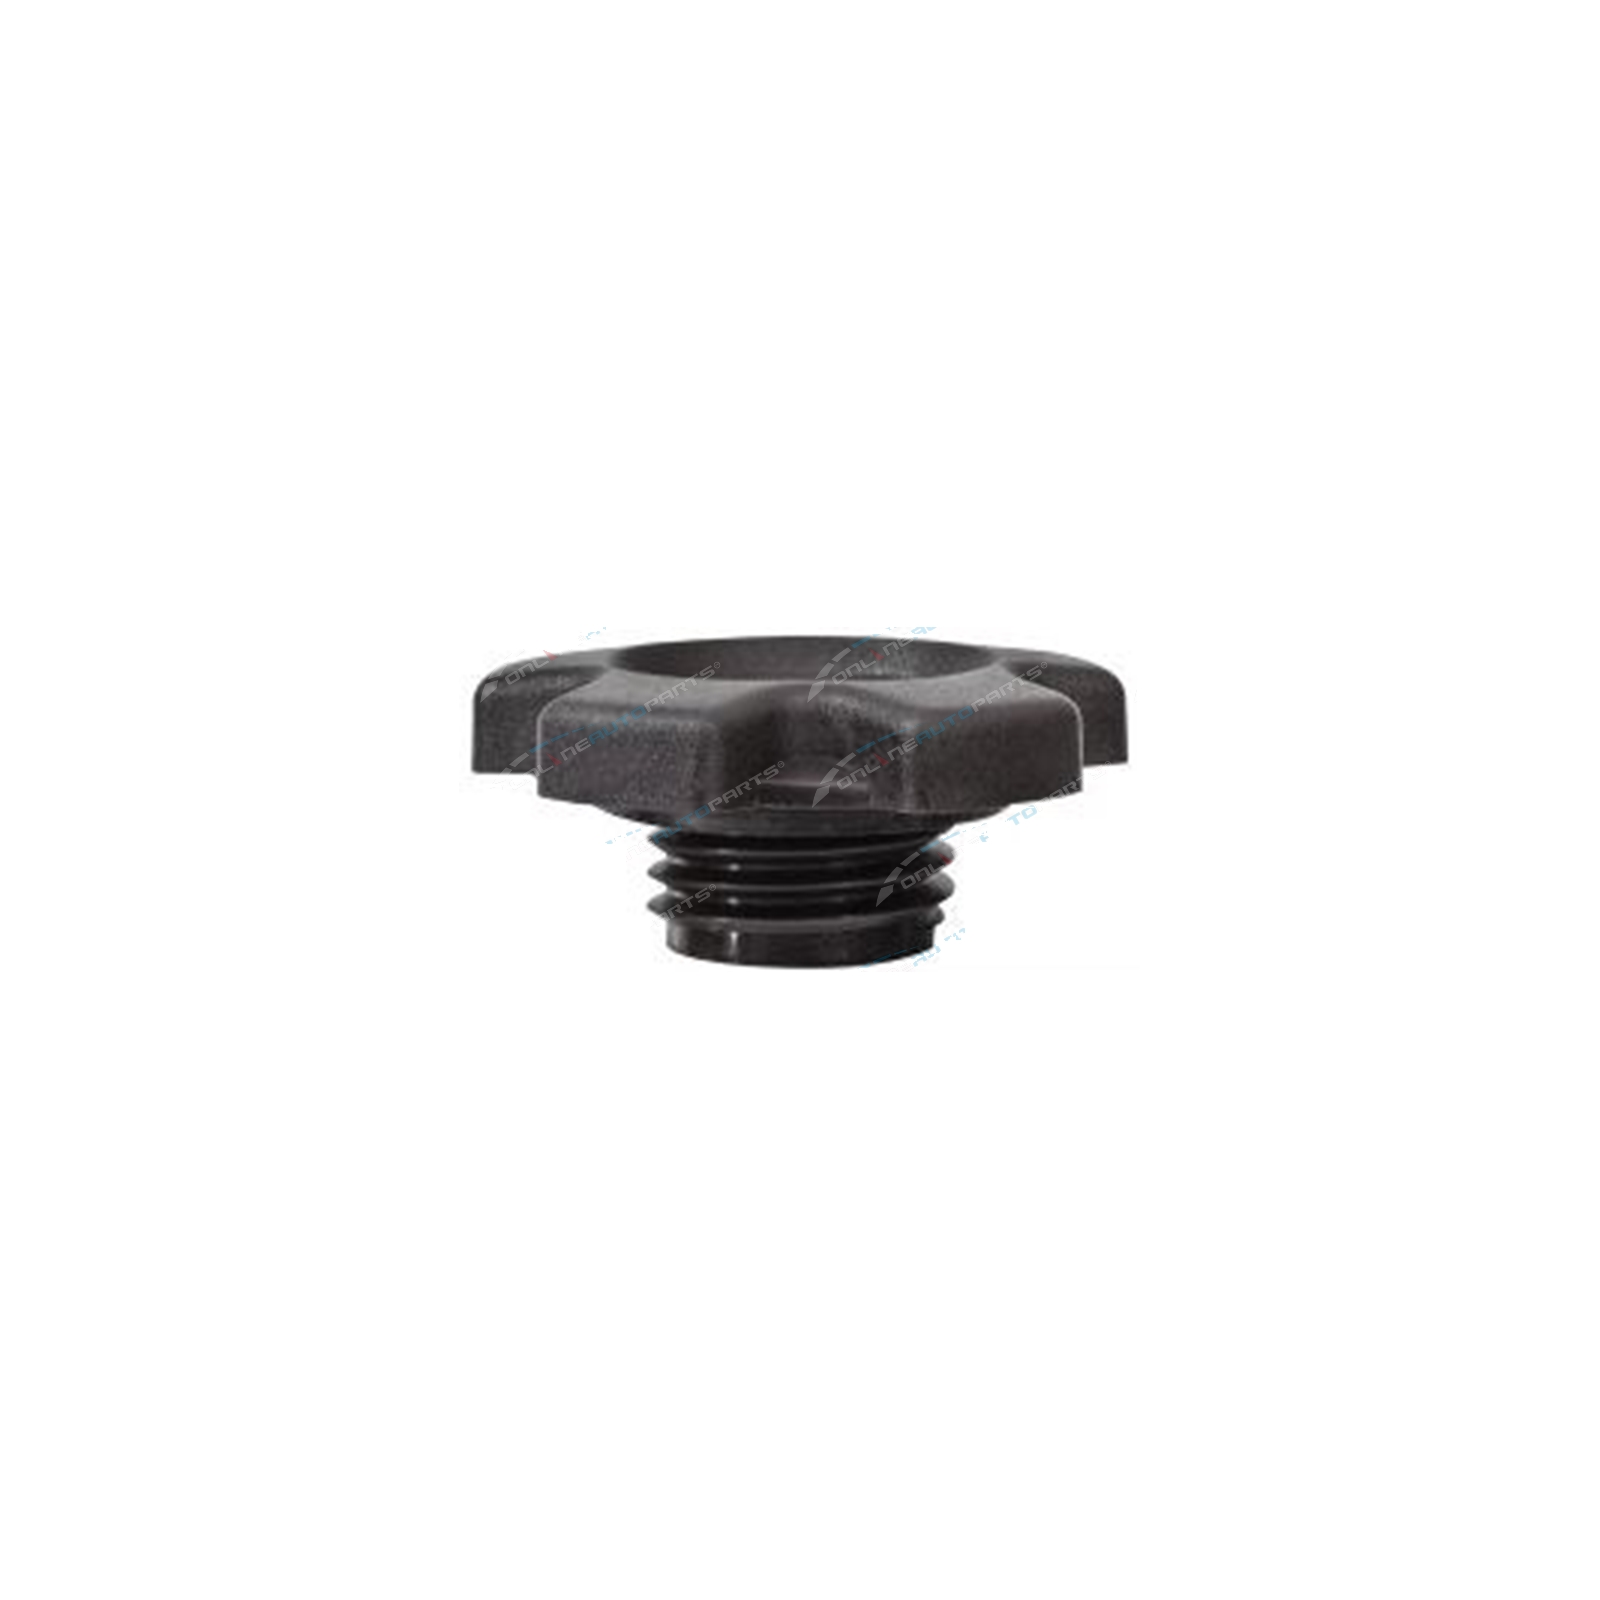 TOC512 - Engine Oil Cap Plastic screw (fine thread) - Tridon